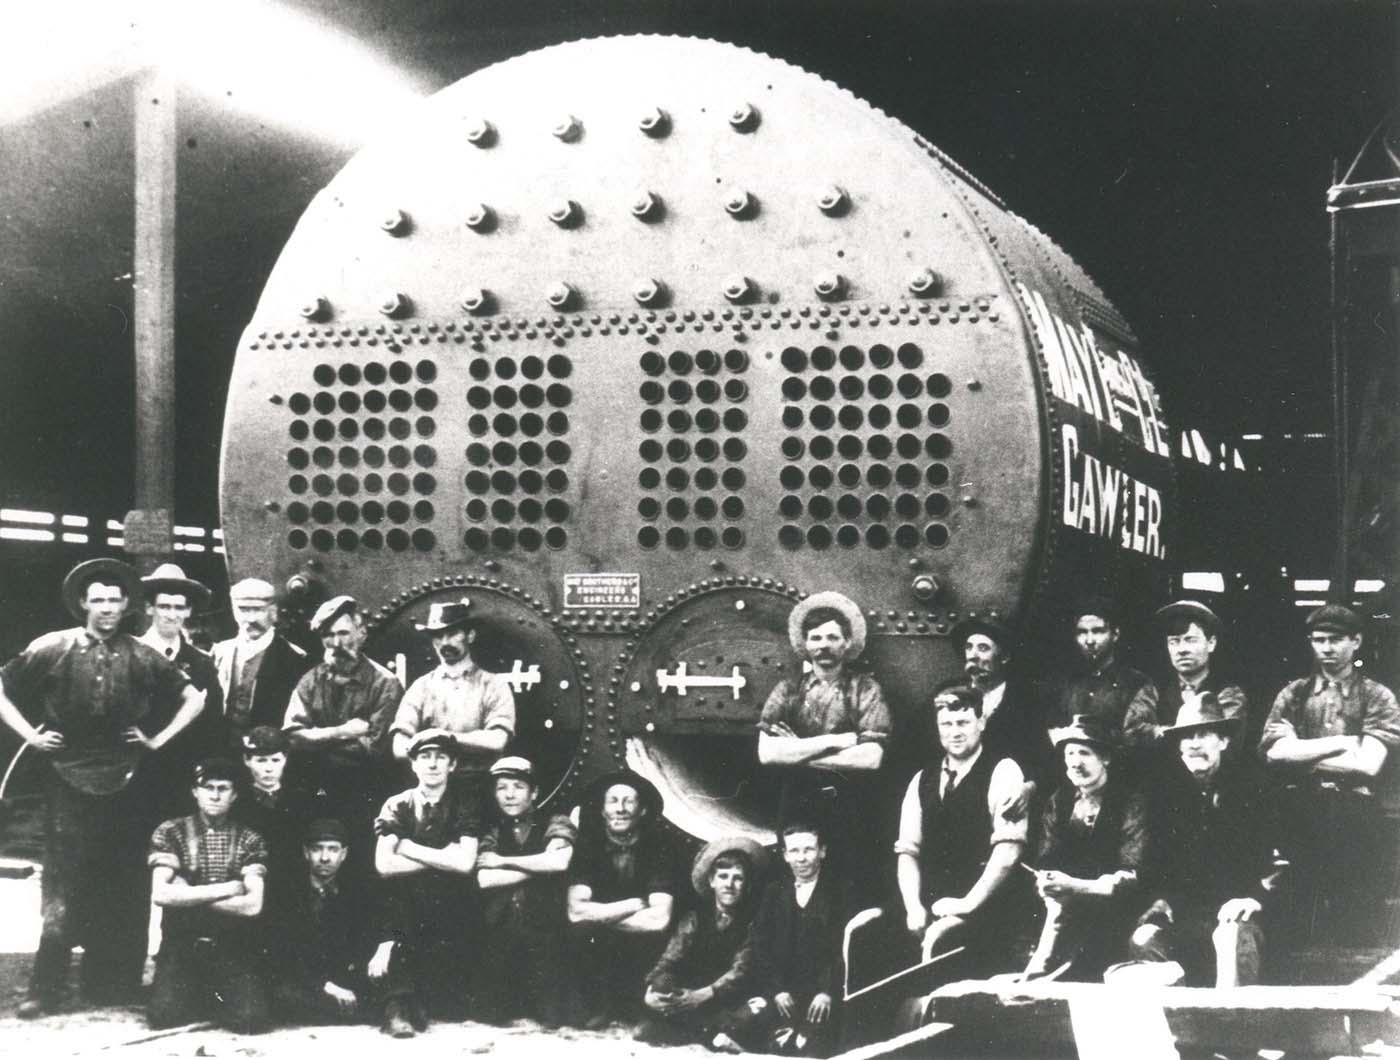 Black and white photo of a group shot of men standing in front of a large cylinder with 'Gawler' printed on the side.